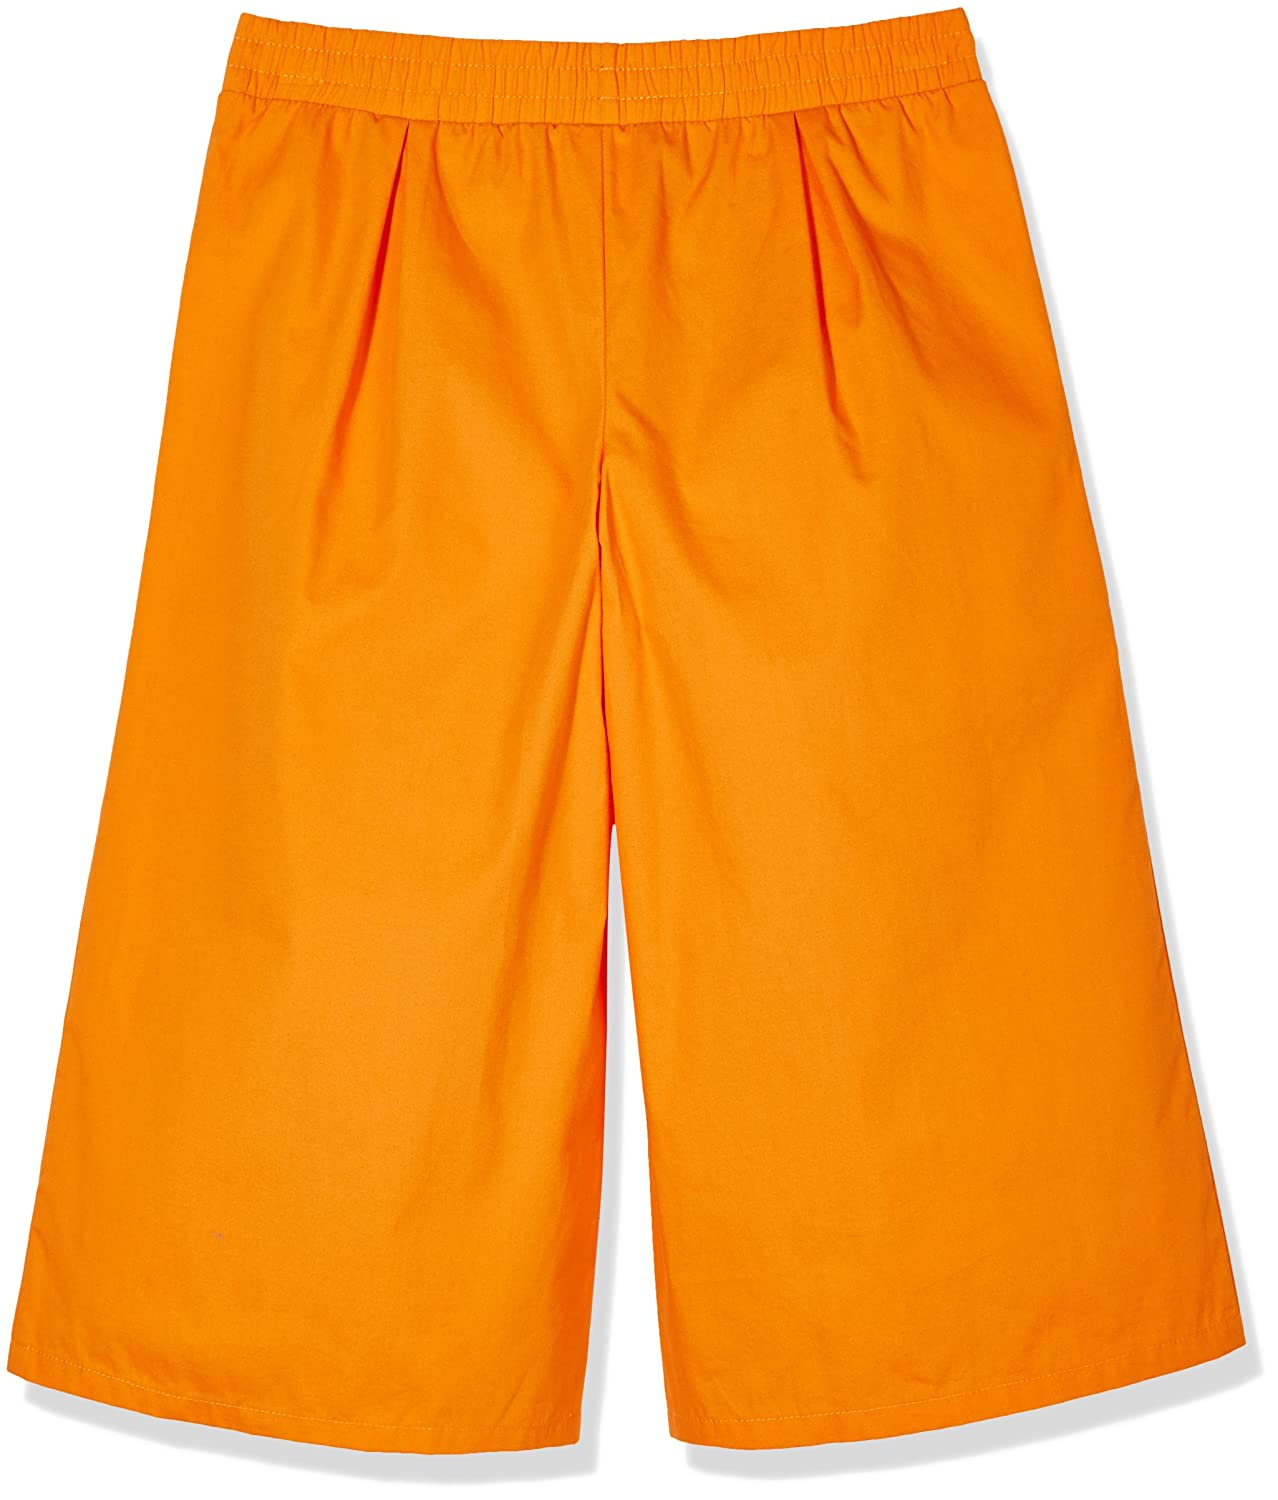 A for Awesome Girls 3//4 Length Wide Leg Cropped Pants with Pockets